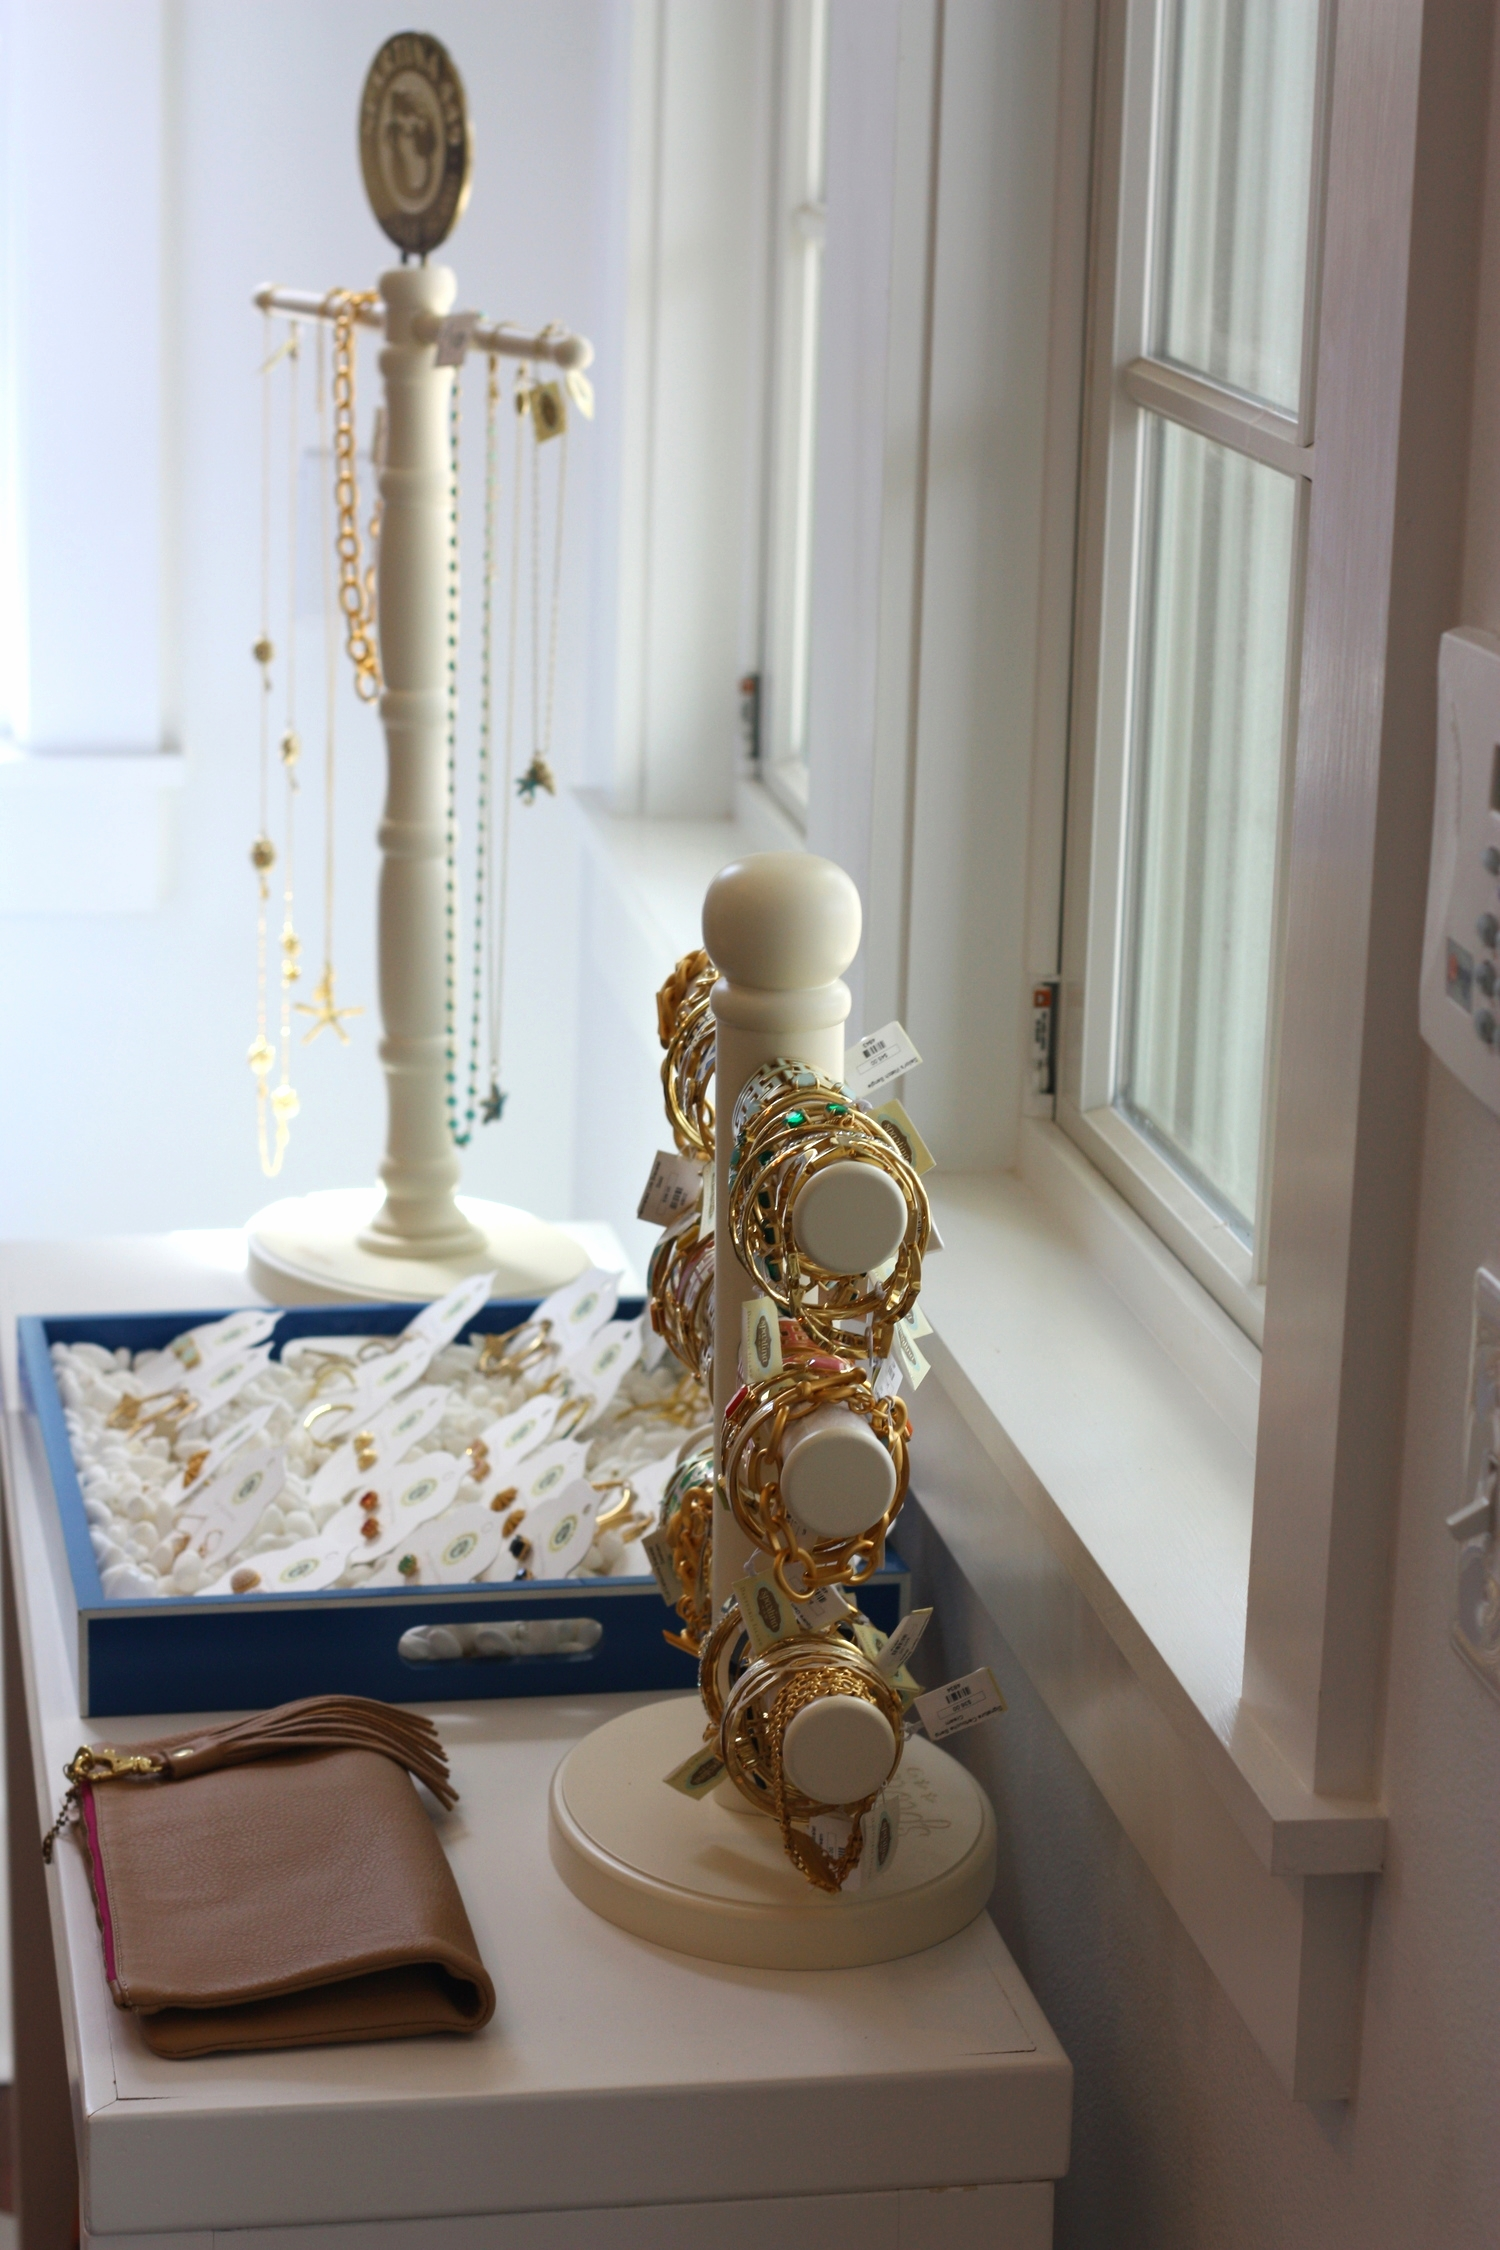 Bluetique, Pensacola: A stylish women's and children's boutique with a variety of trendy and classic apparel and accessories